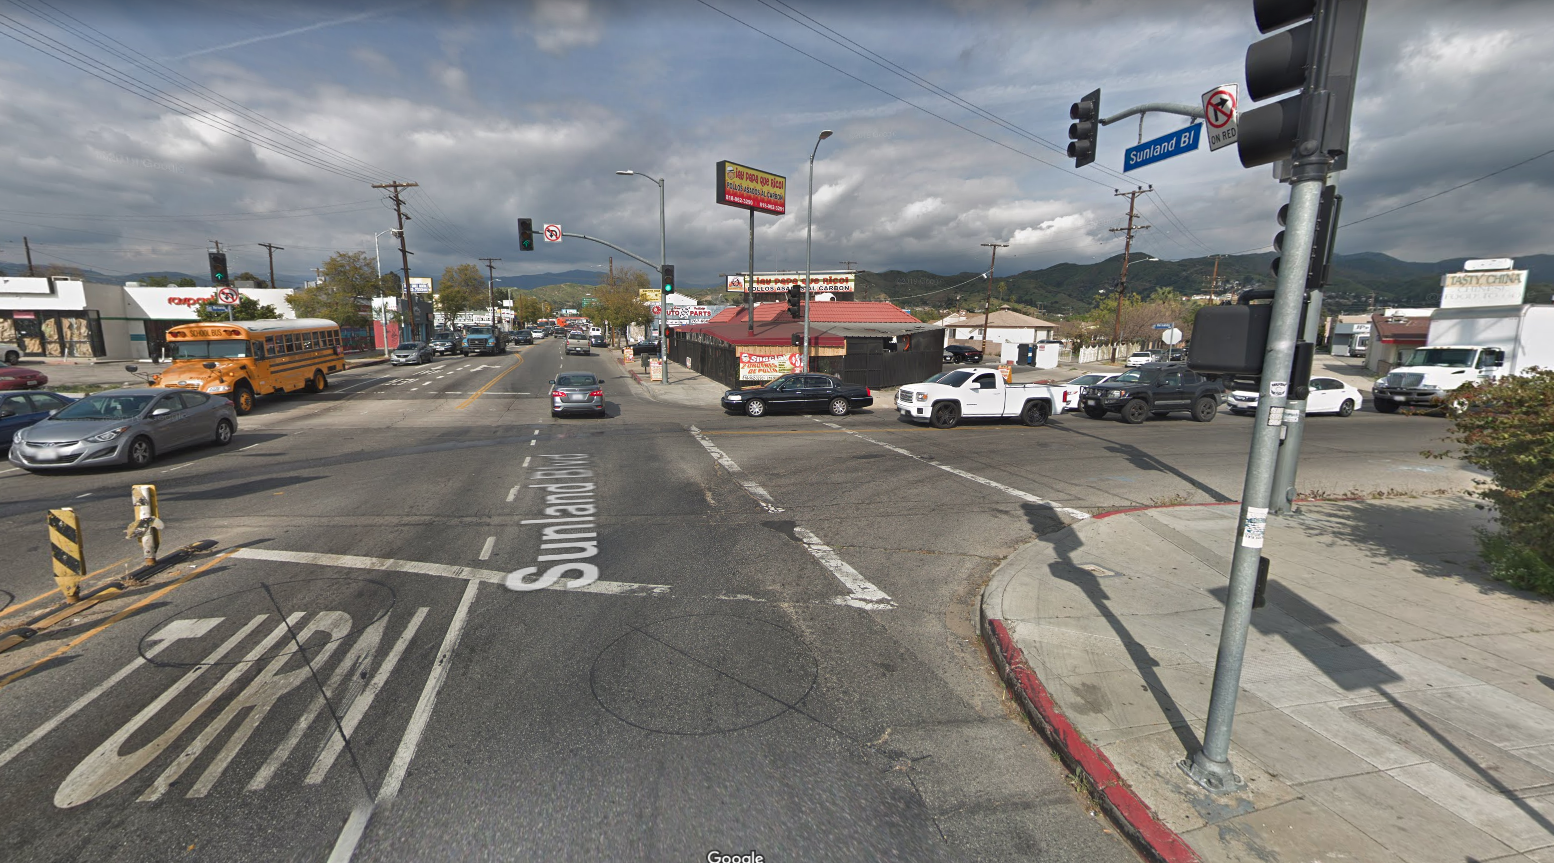 A Google Maps image shows an intersection near Sunland Boulevard in Sun Valley.